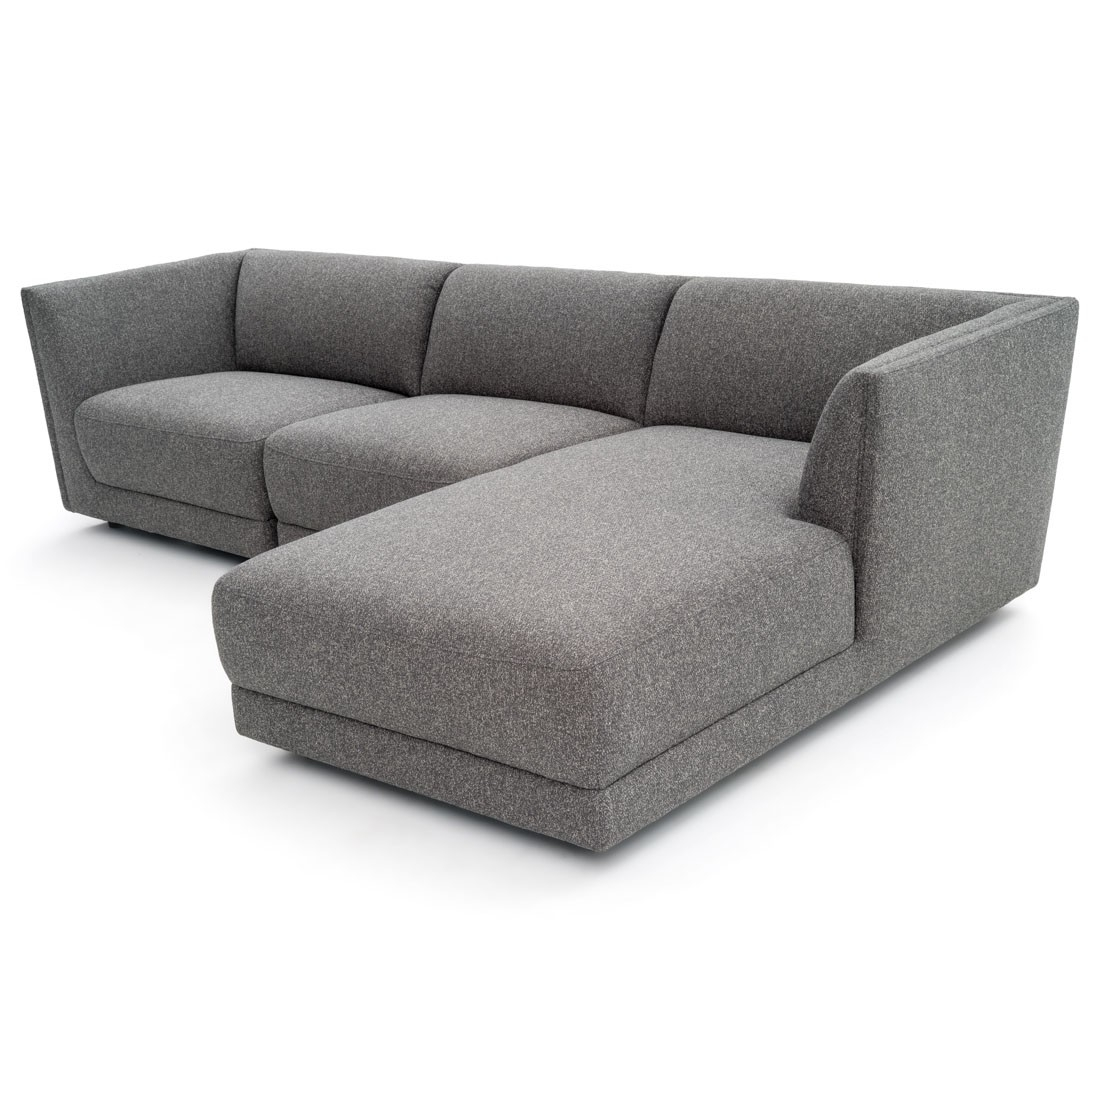 Best 10 of mobilia sectional sofas for Mobilia 9 6